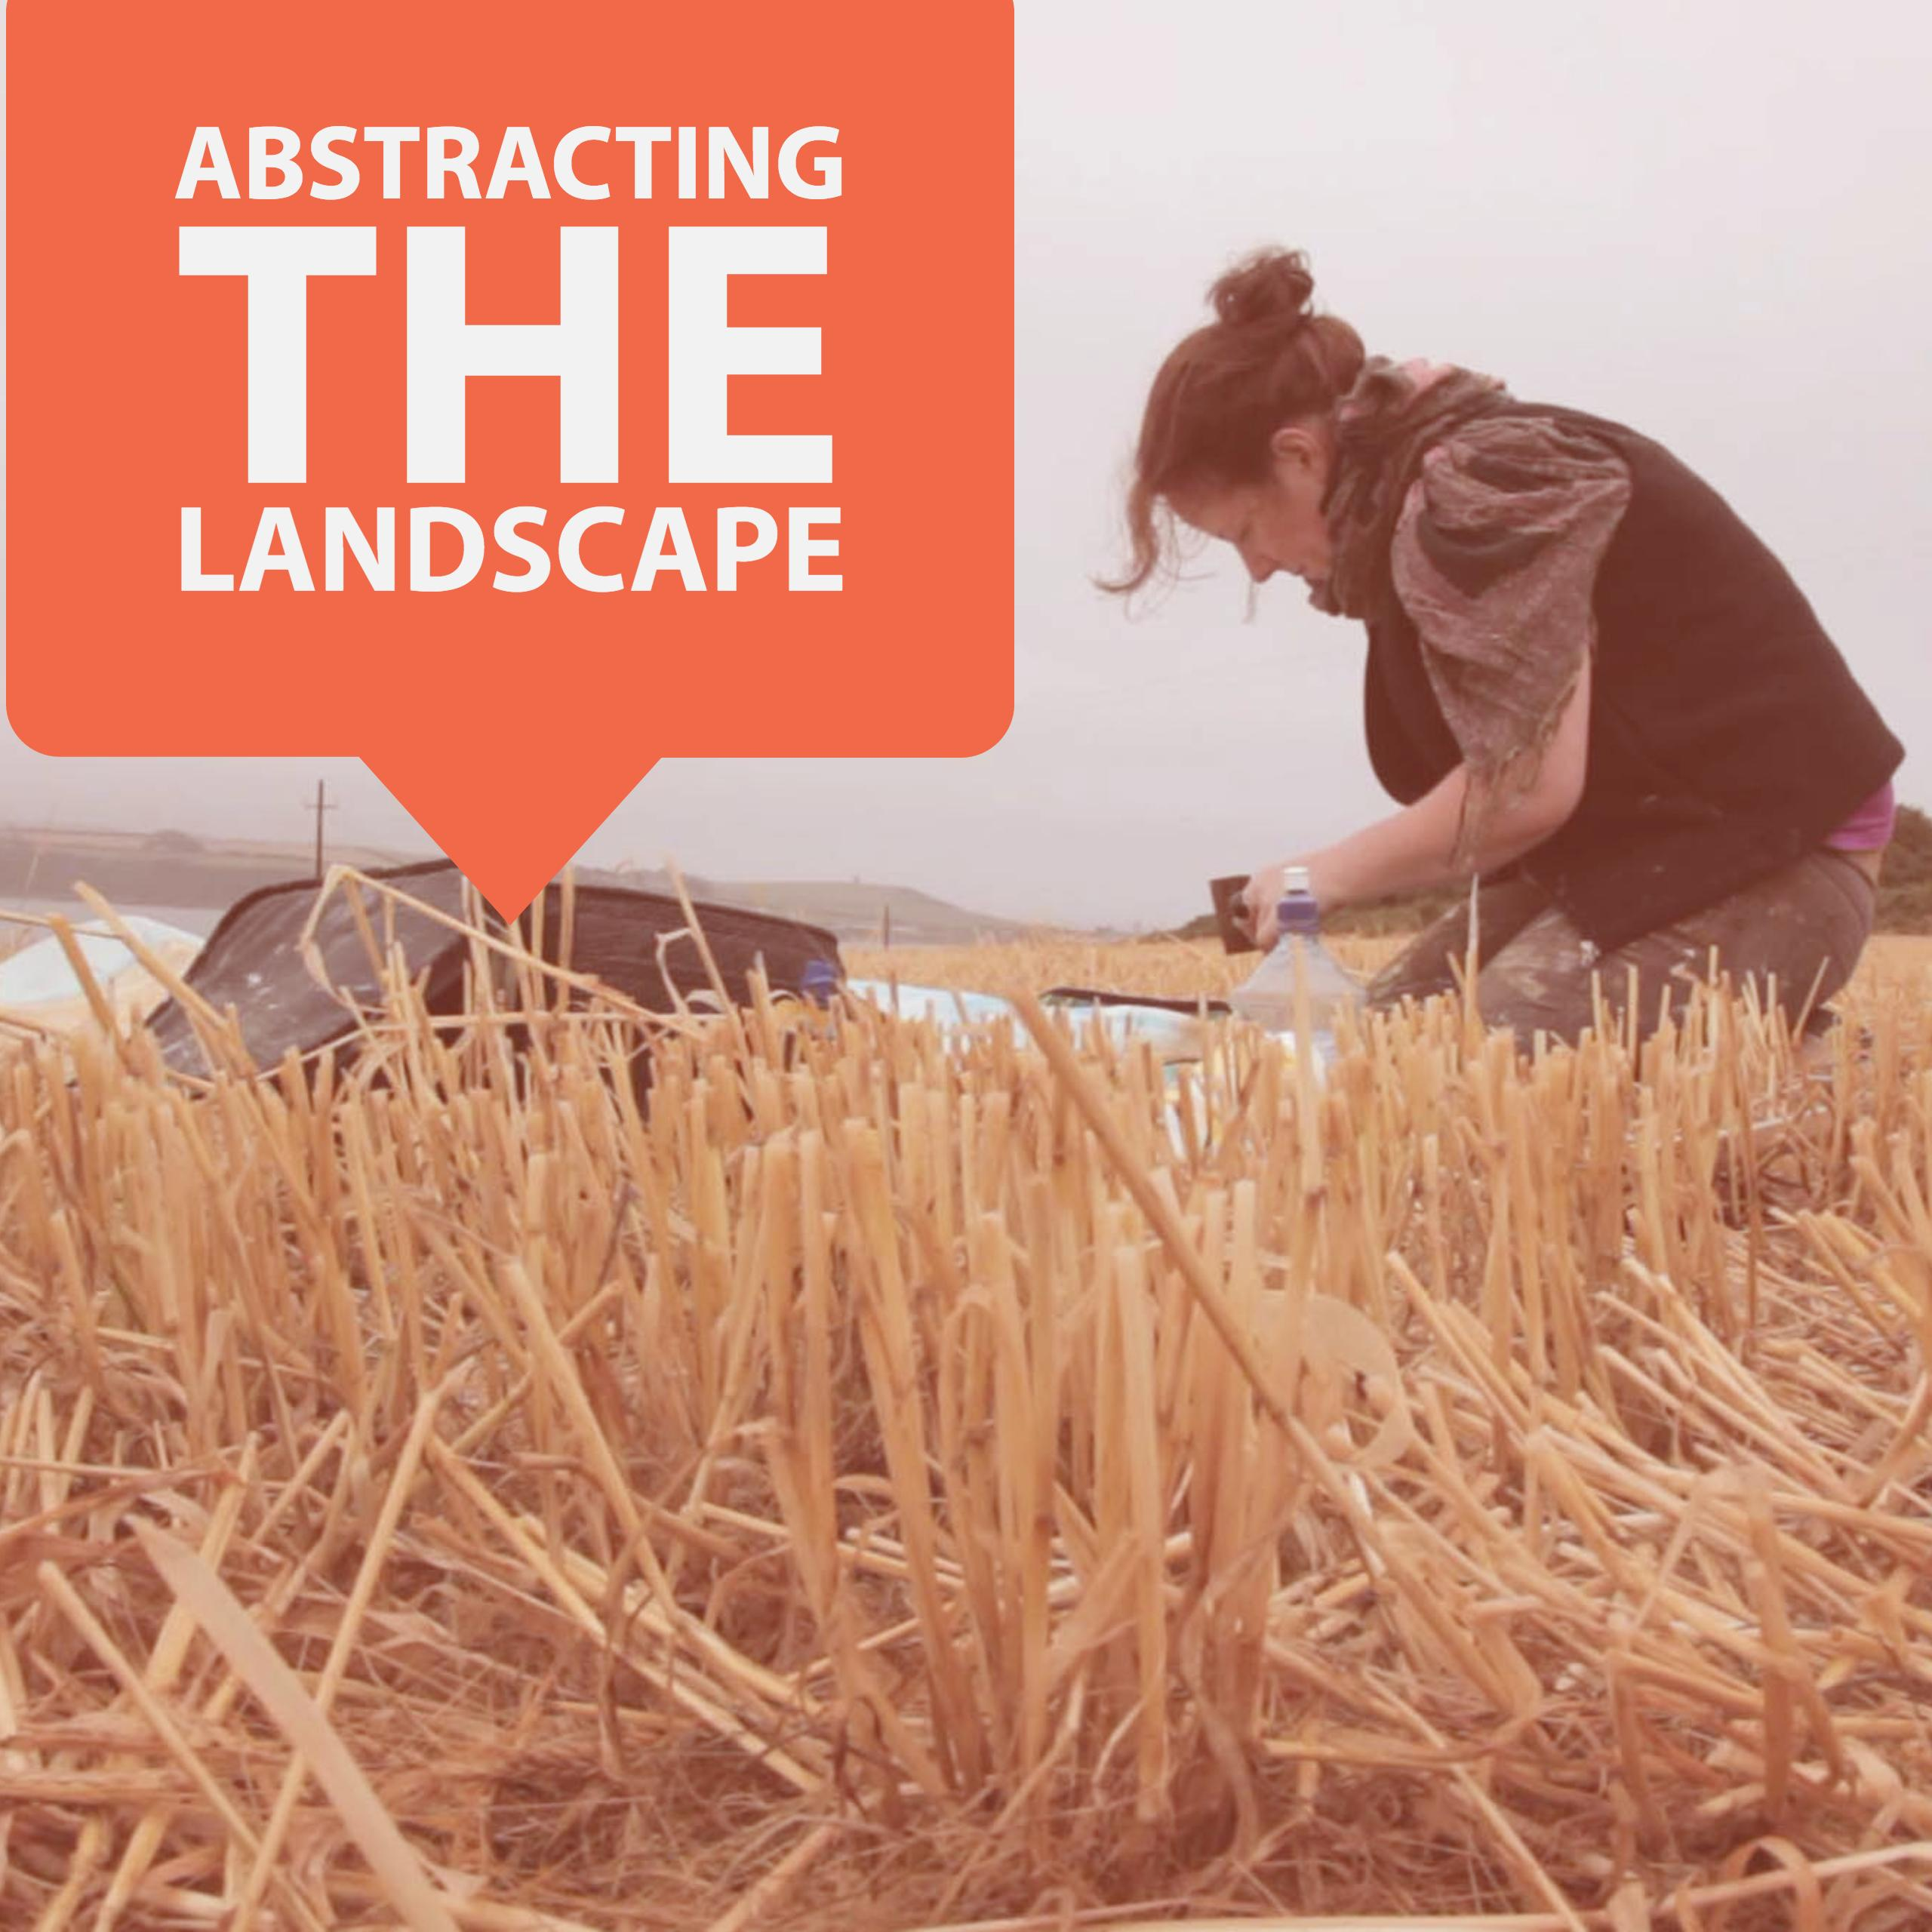 Abstracting the Landscape, 18th - 19th July 2020, Sligo